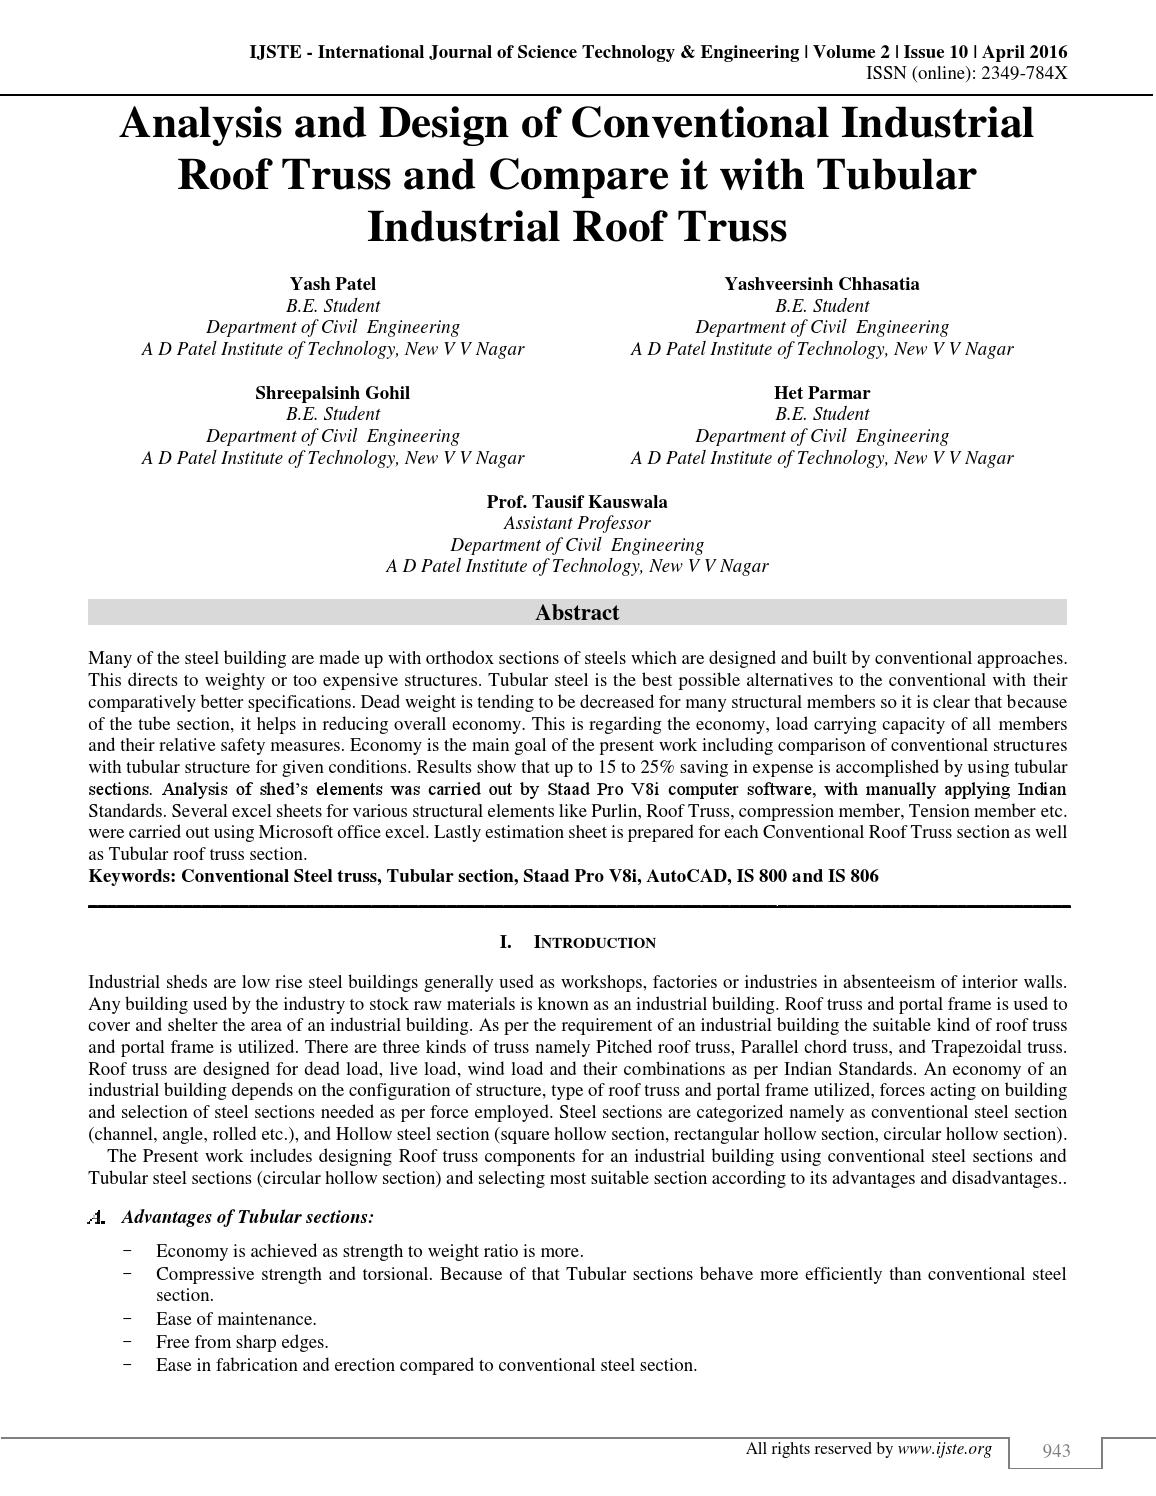 Analysis and Design of Conventional Industrial Roof Truss